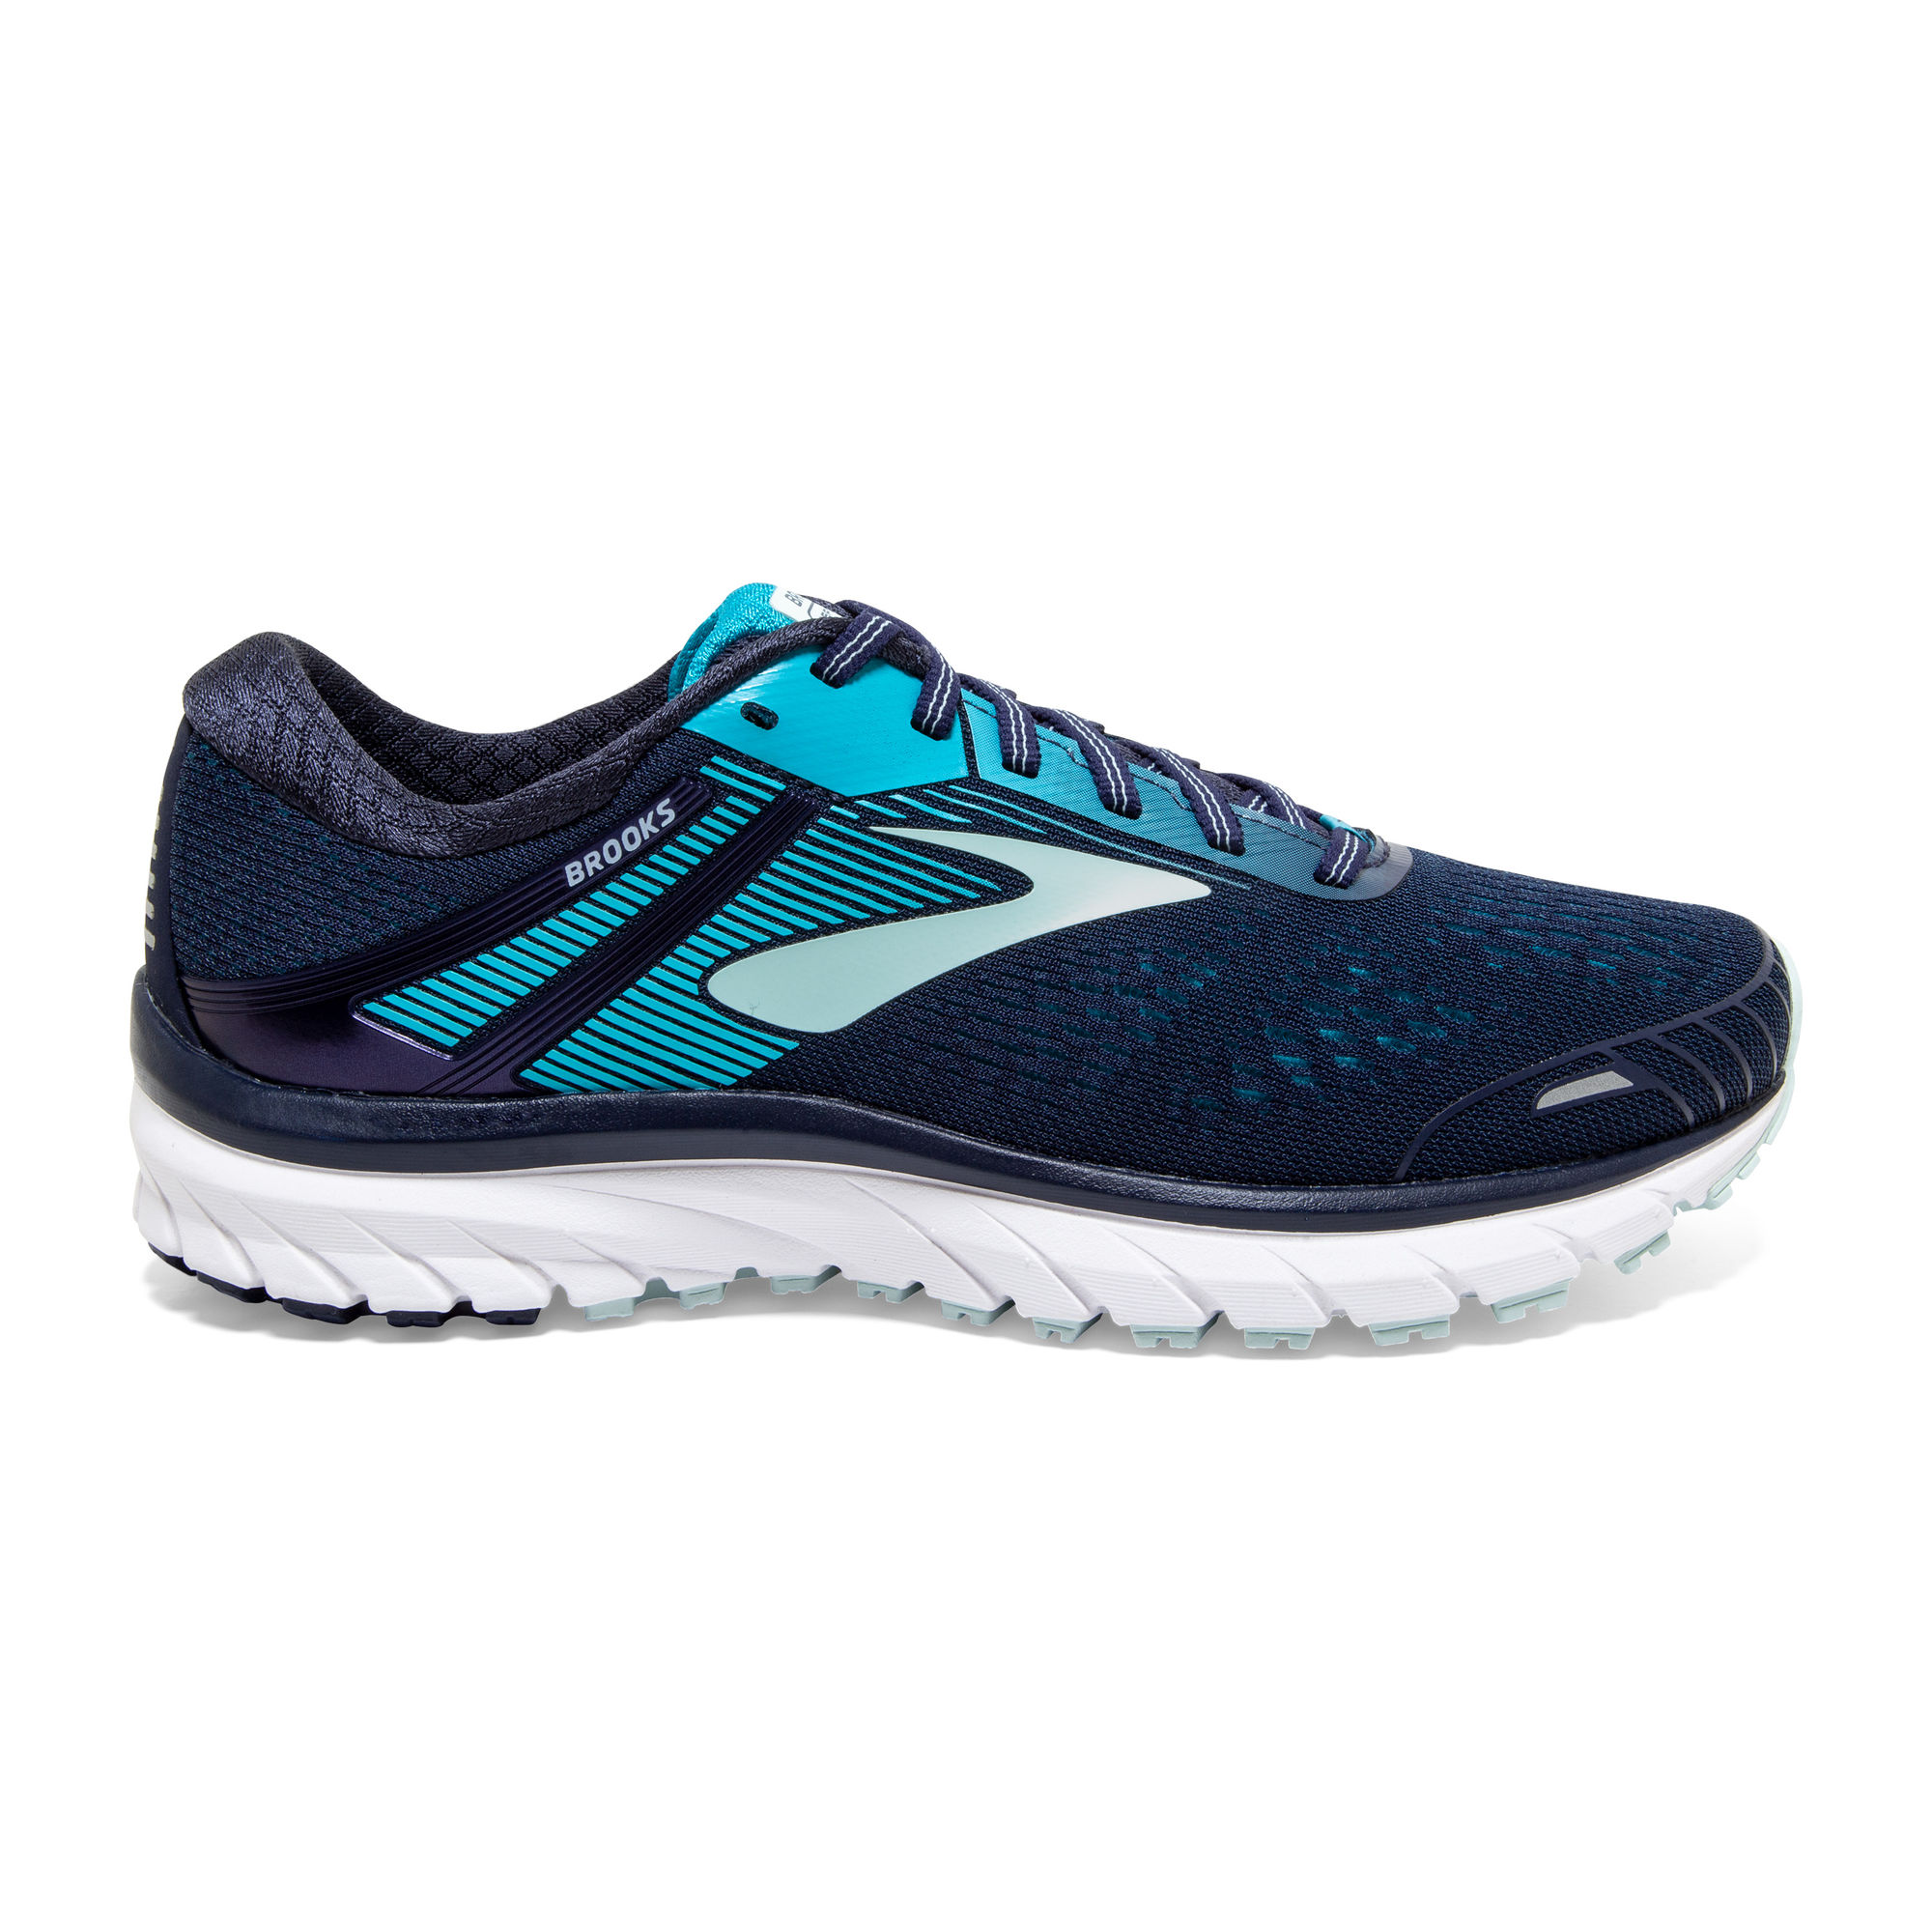 Brooks Lady Defyance 11 B (Blau Aquamarin Weiß)